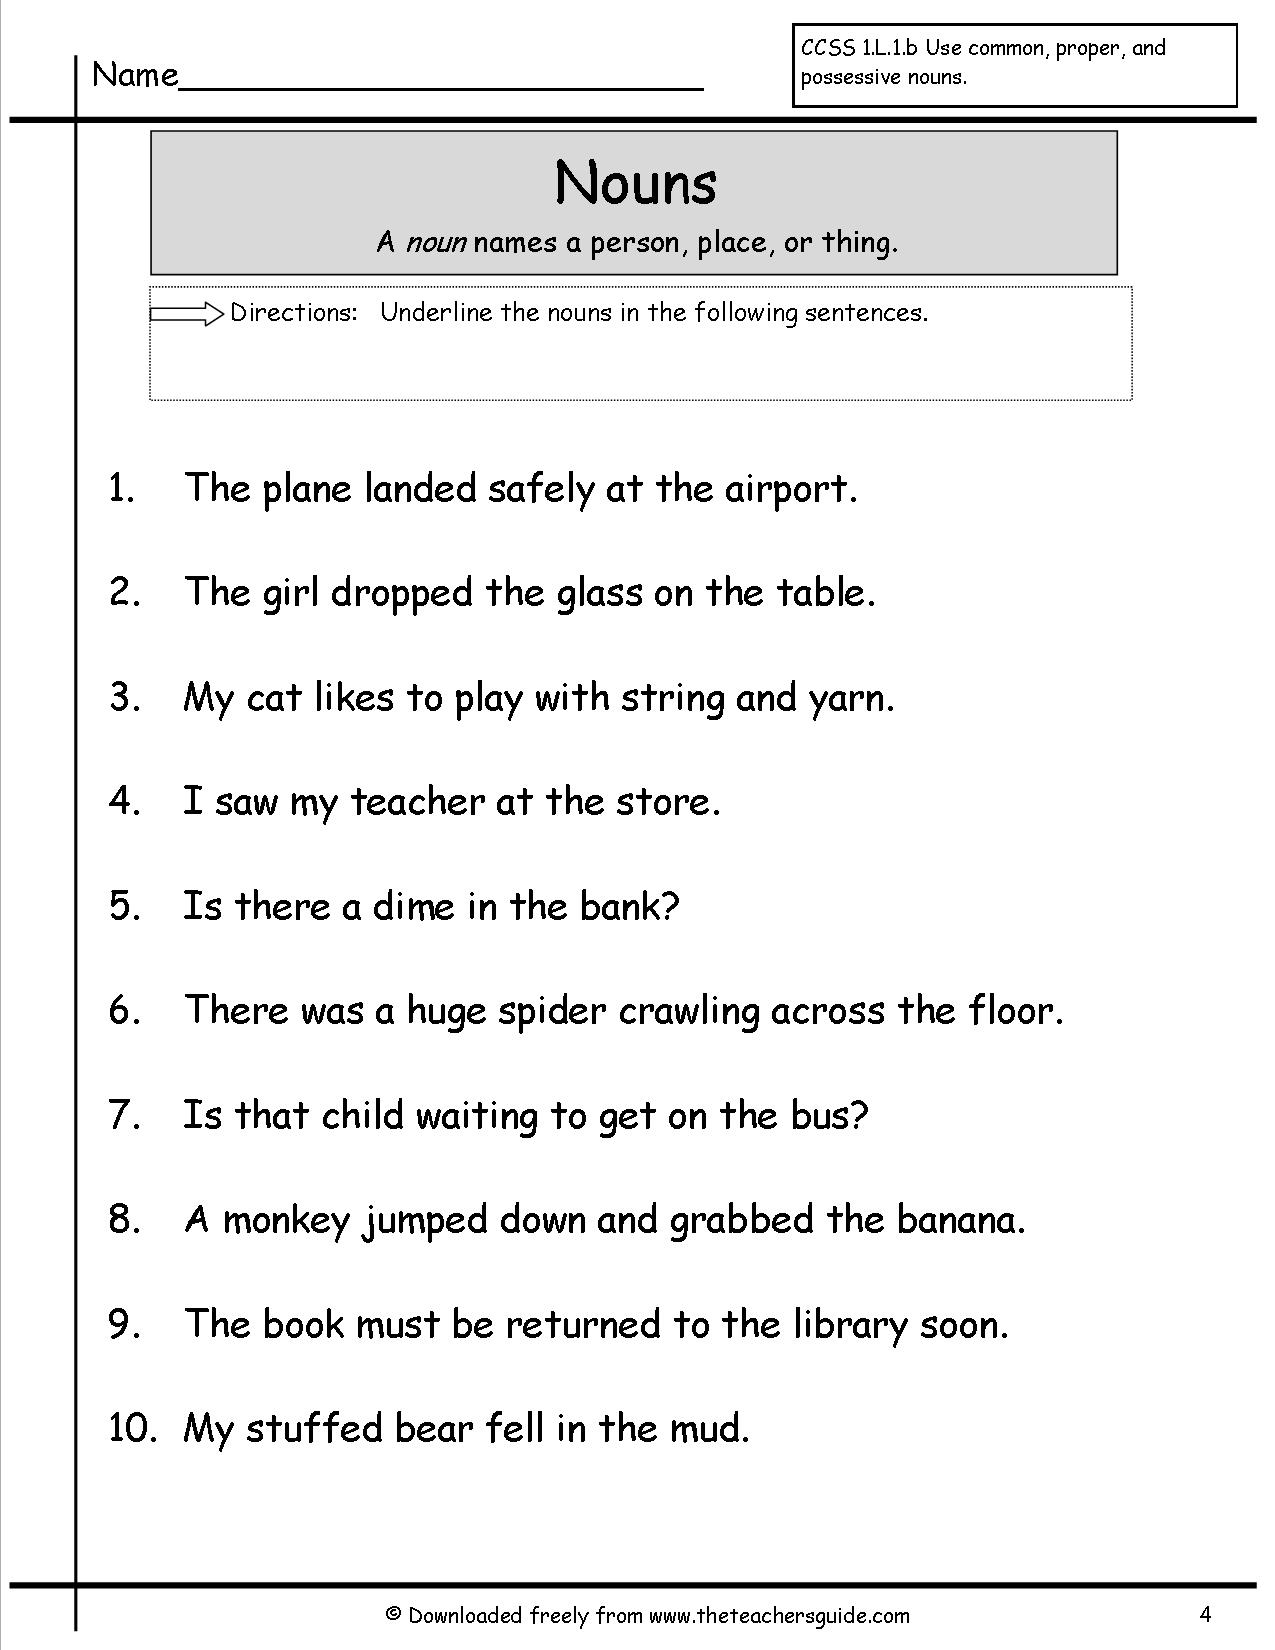 17 Best Images Of Noun Worksheet Fun Activities